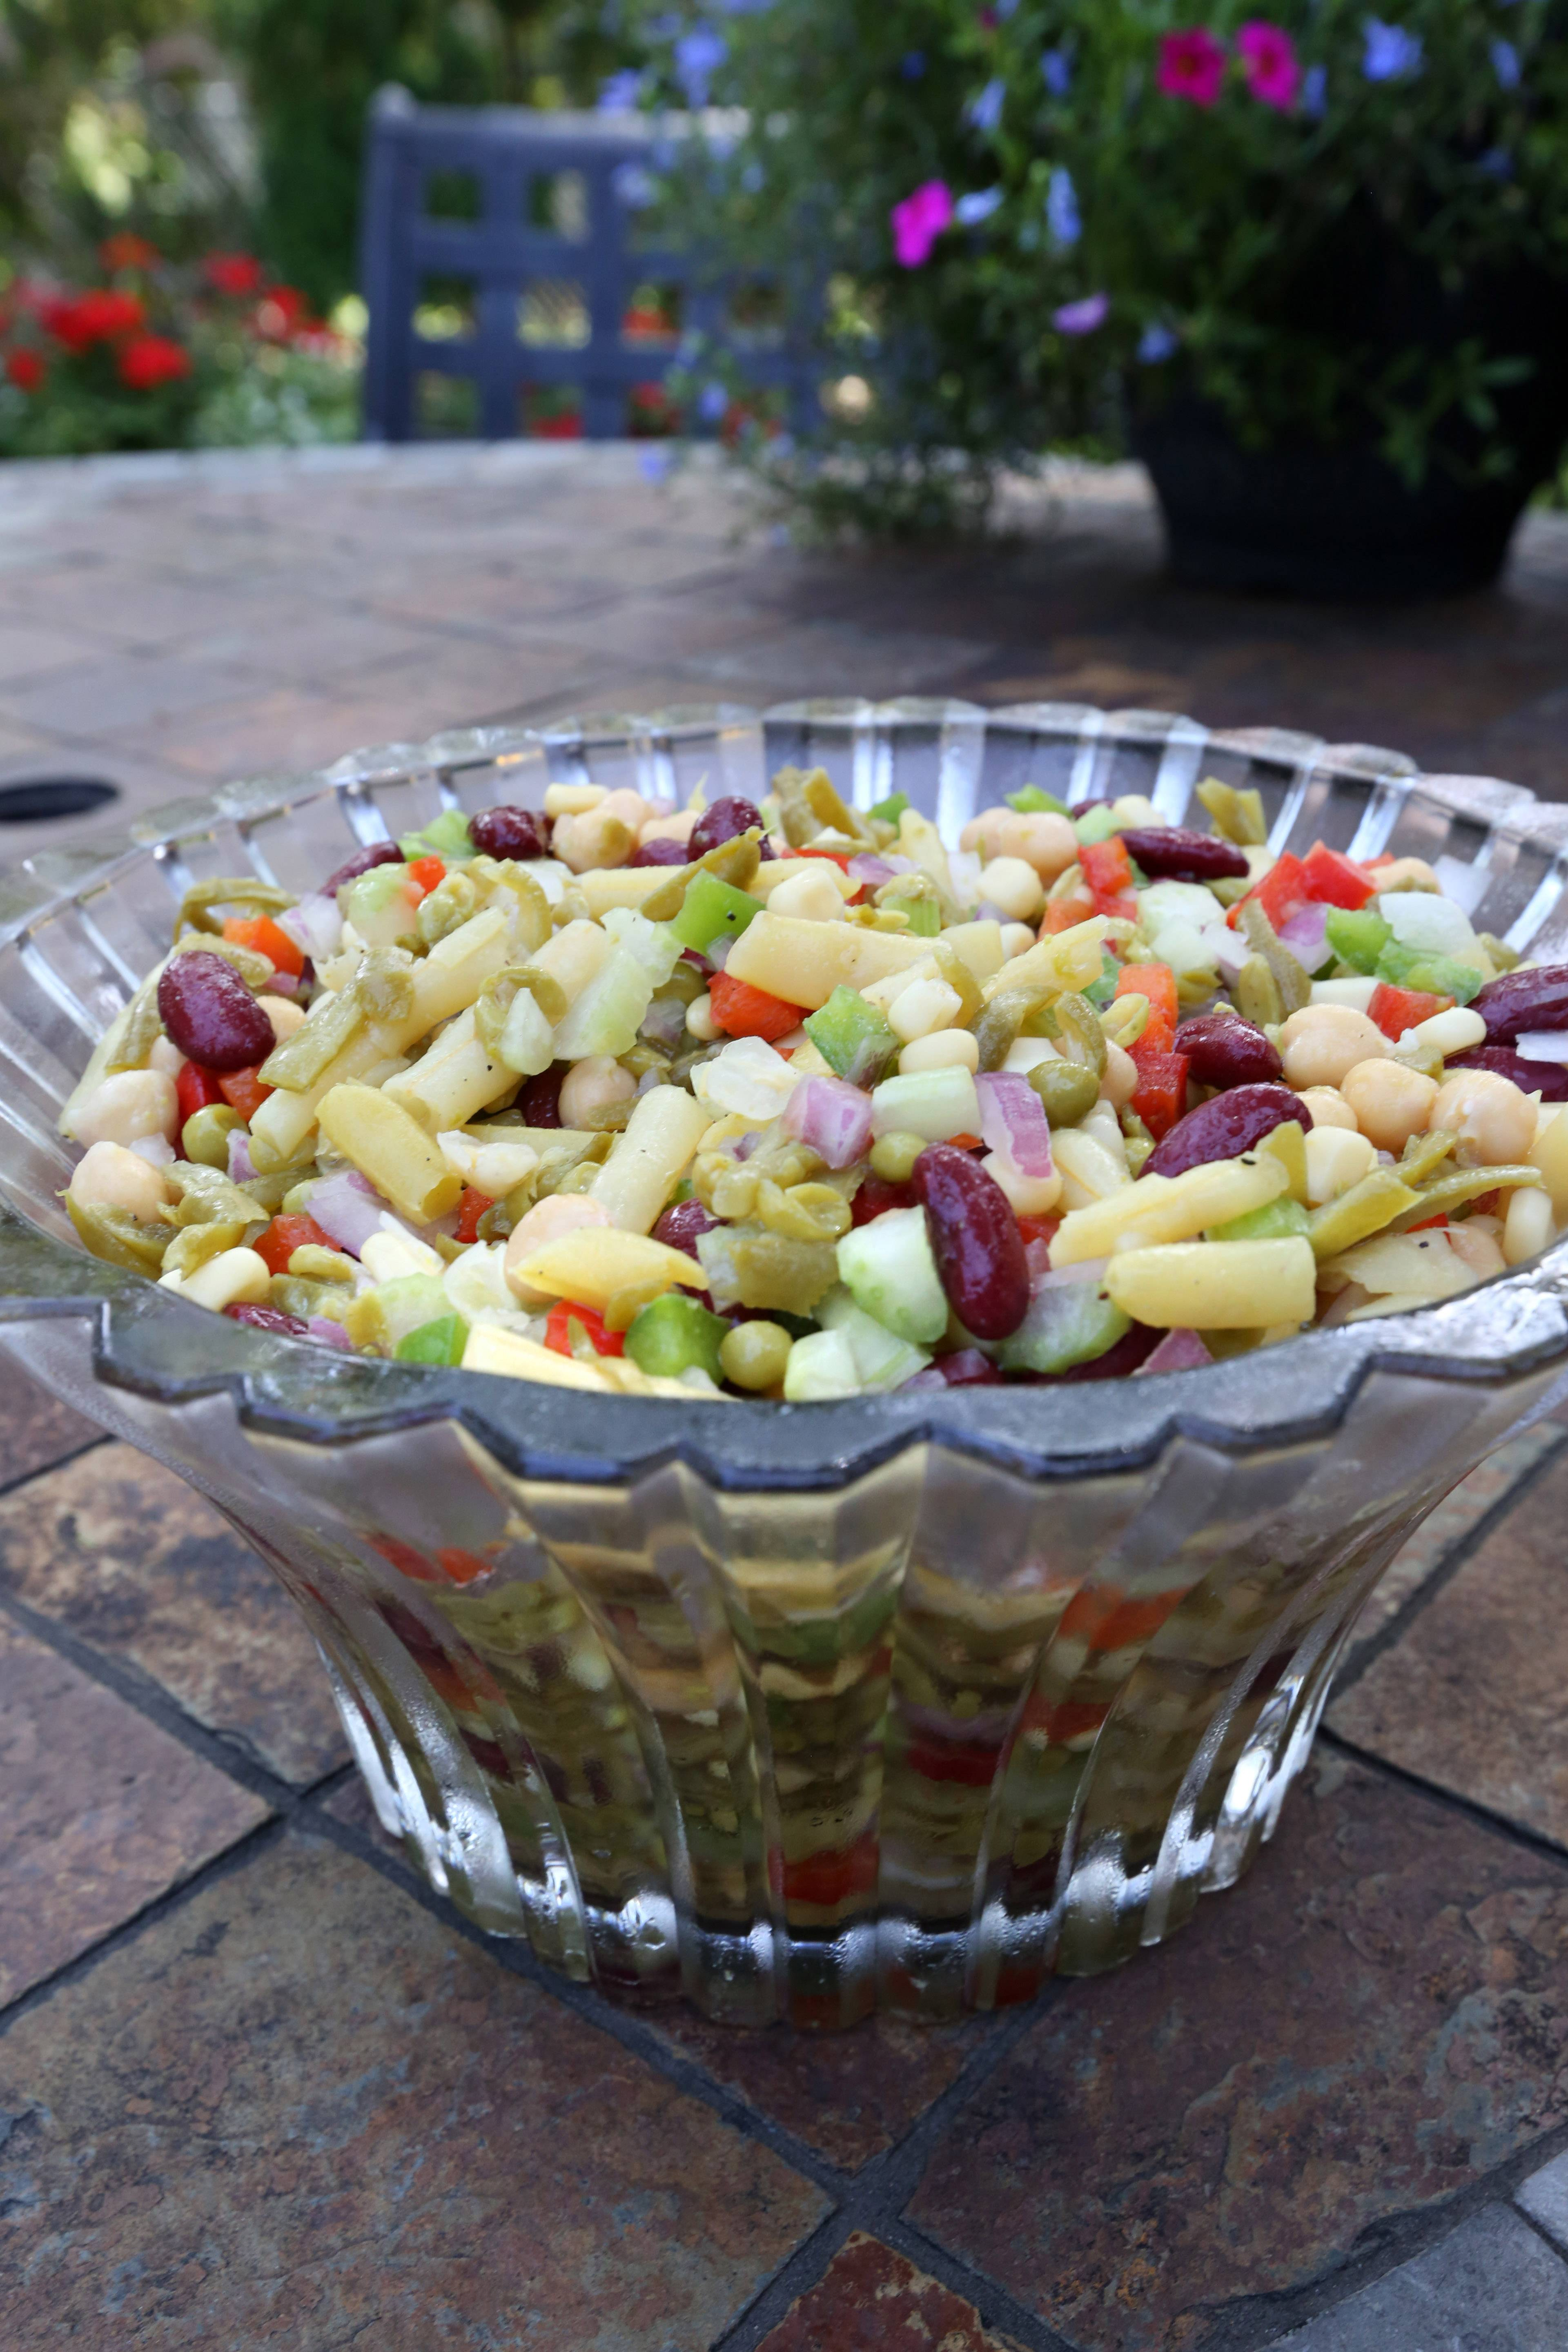 A variety of beans mingle with sweet peppers, onion and celery in a summery side dish that Jill Von Boeckman, of Arlington Heights, and her mother, Martha Grossweiler, have been sharing at family gatherings for years.